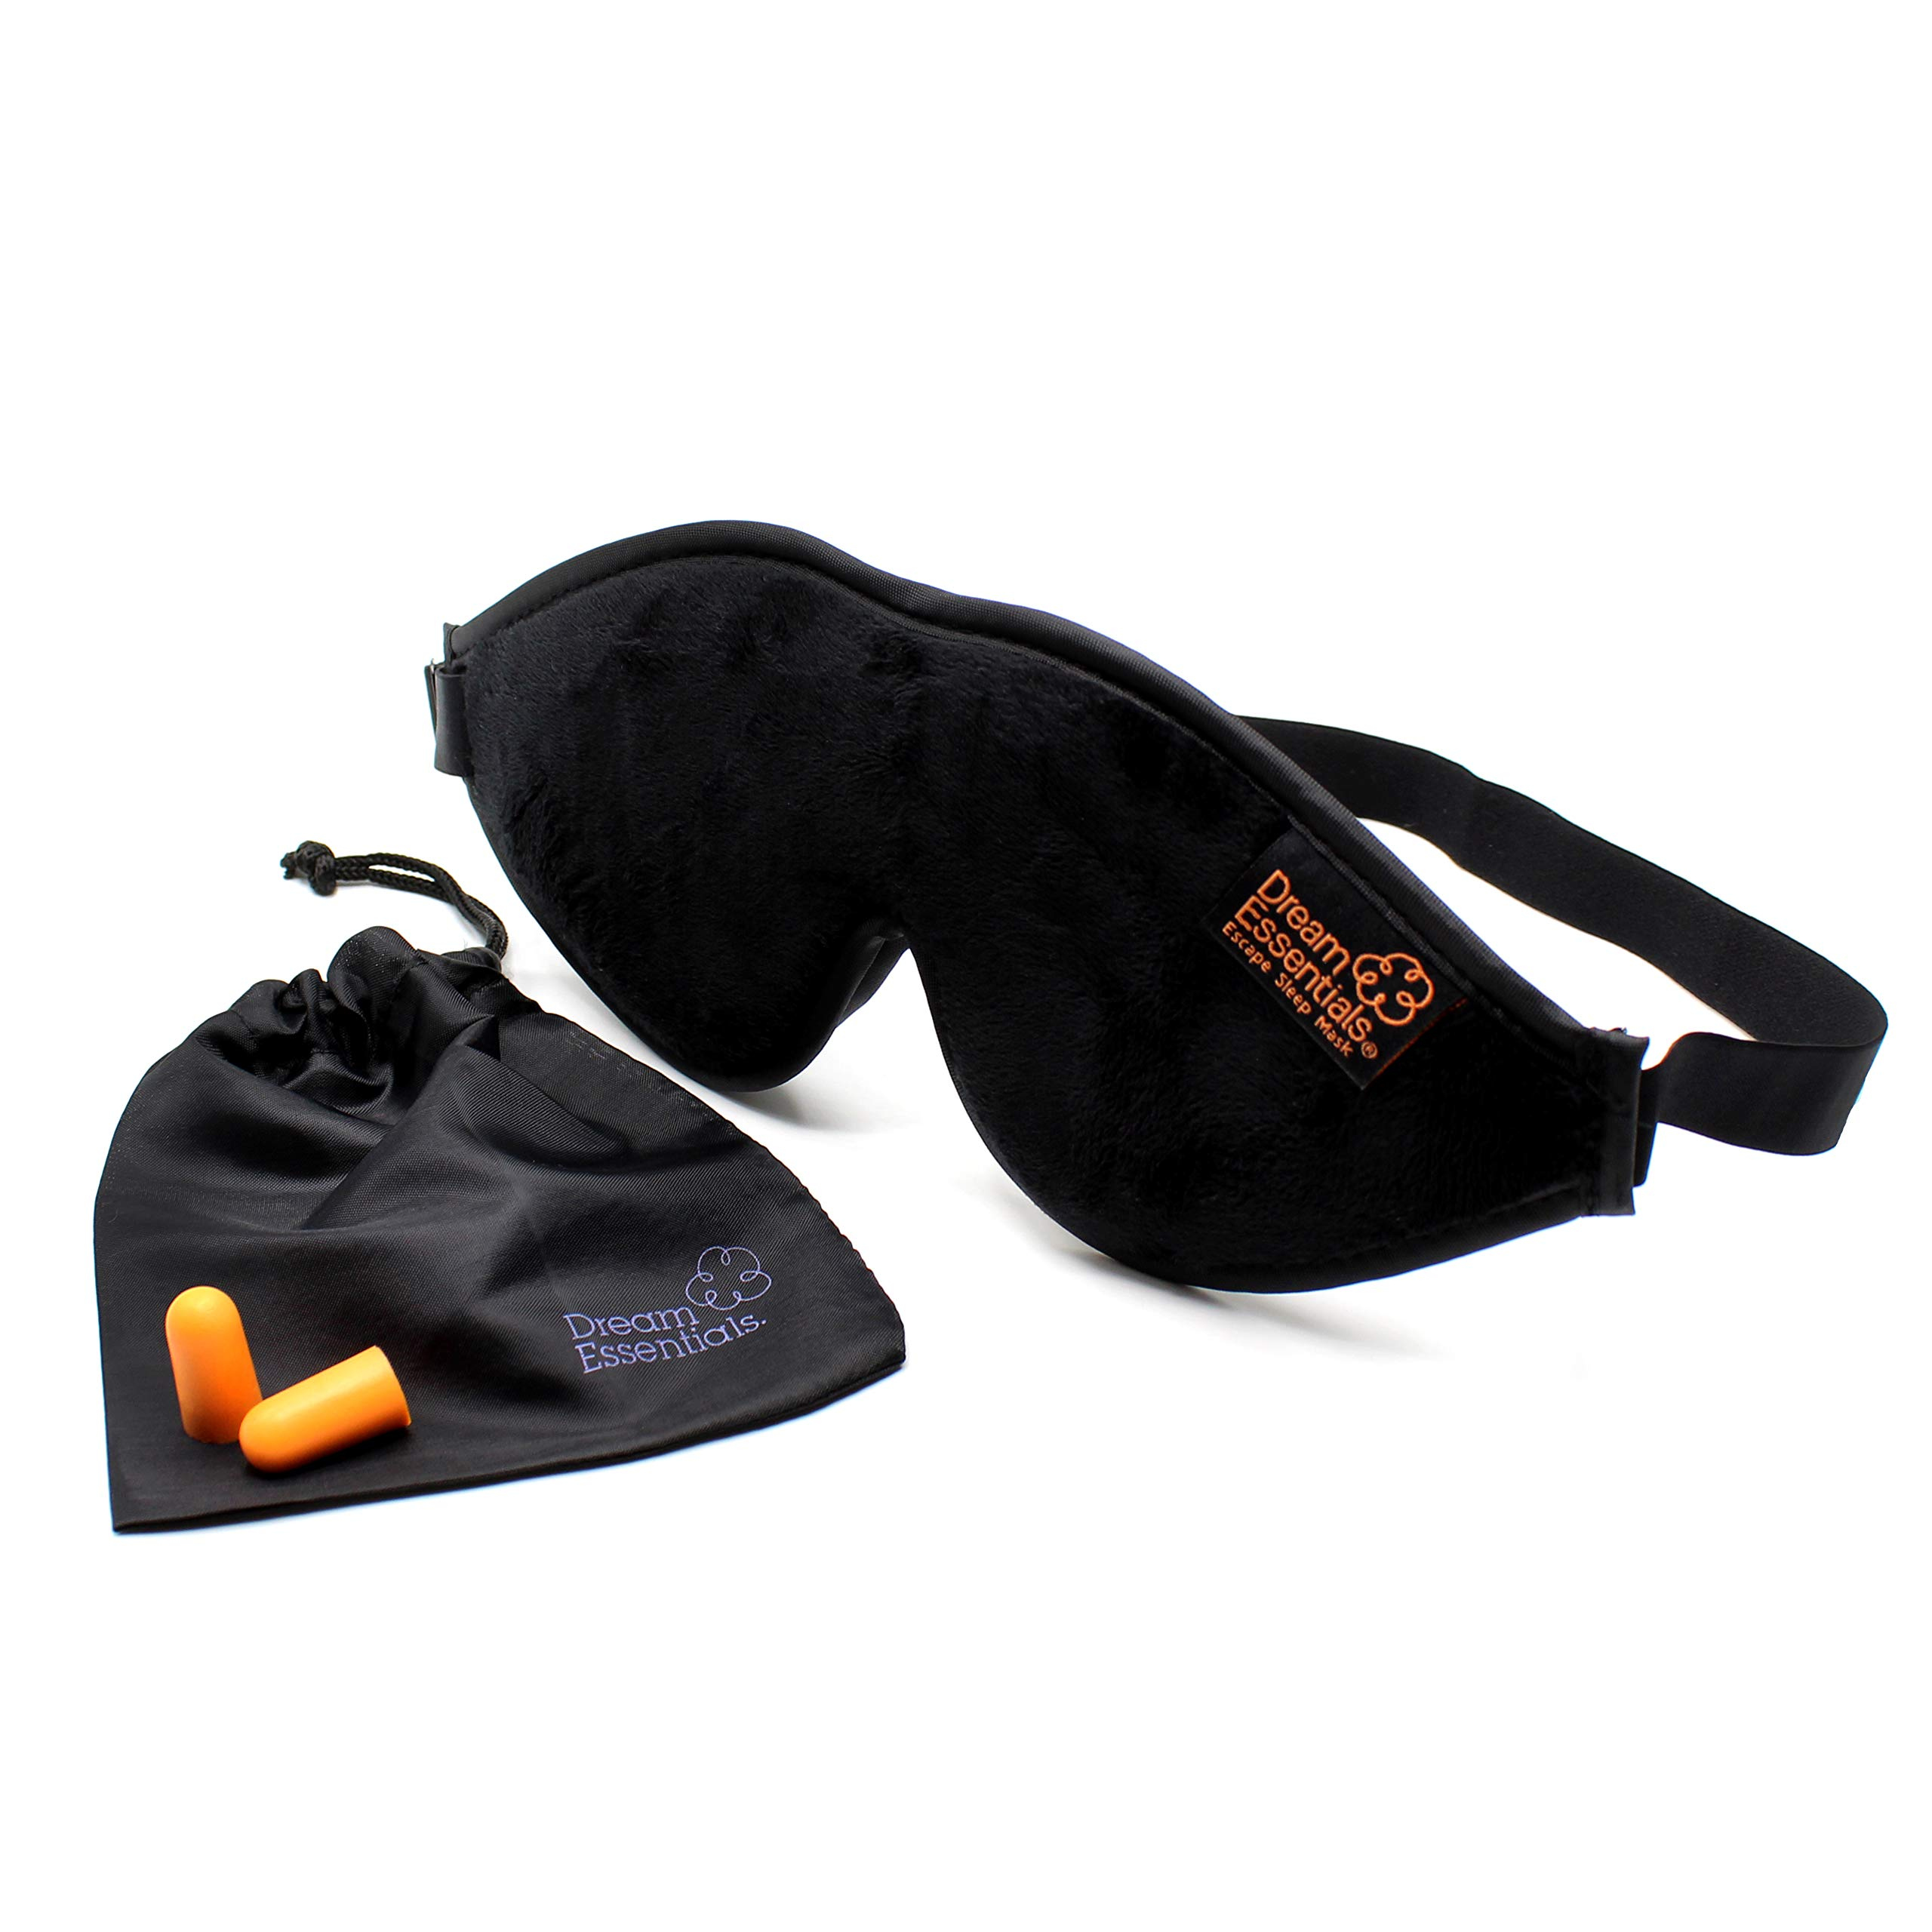 Dream Essentials Escape Luxury Sleep Mask Kit with Earplugs and Carry Pouch (Black), Gift Set by Dream Essentials